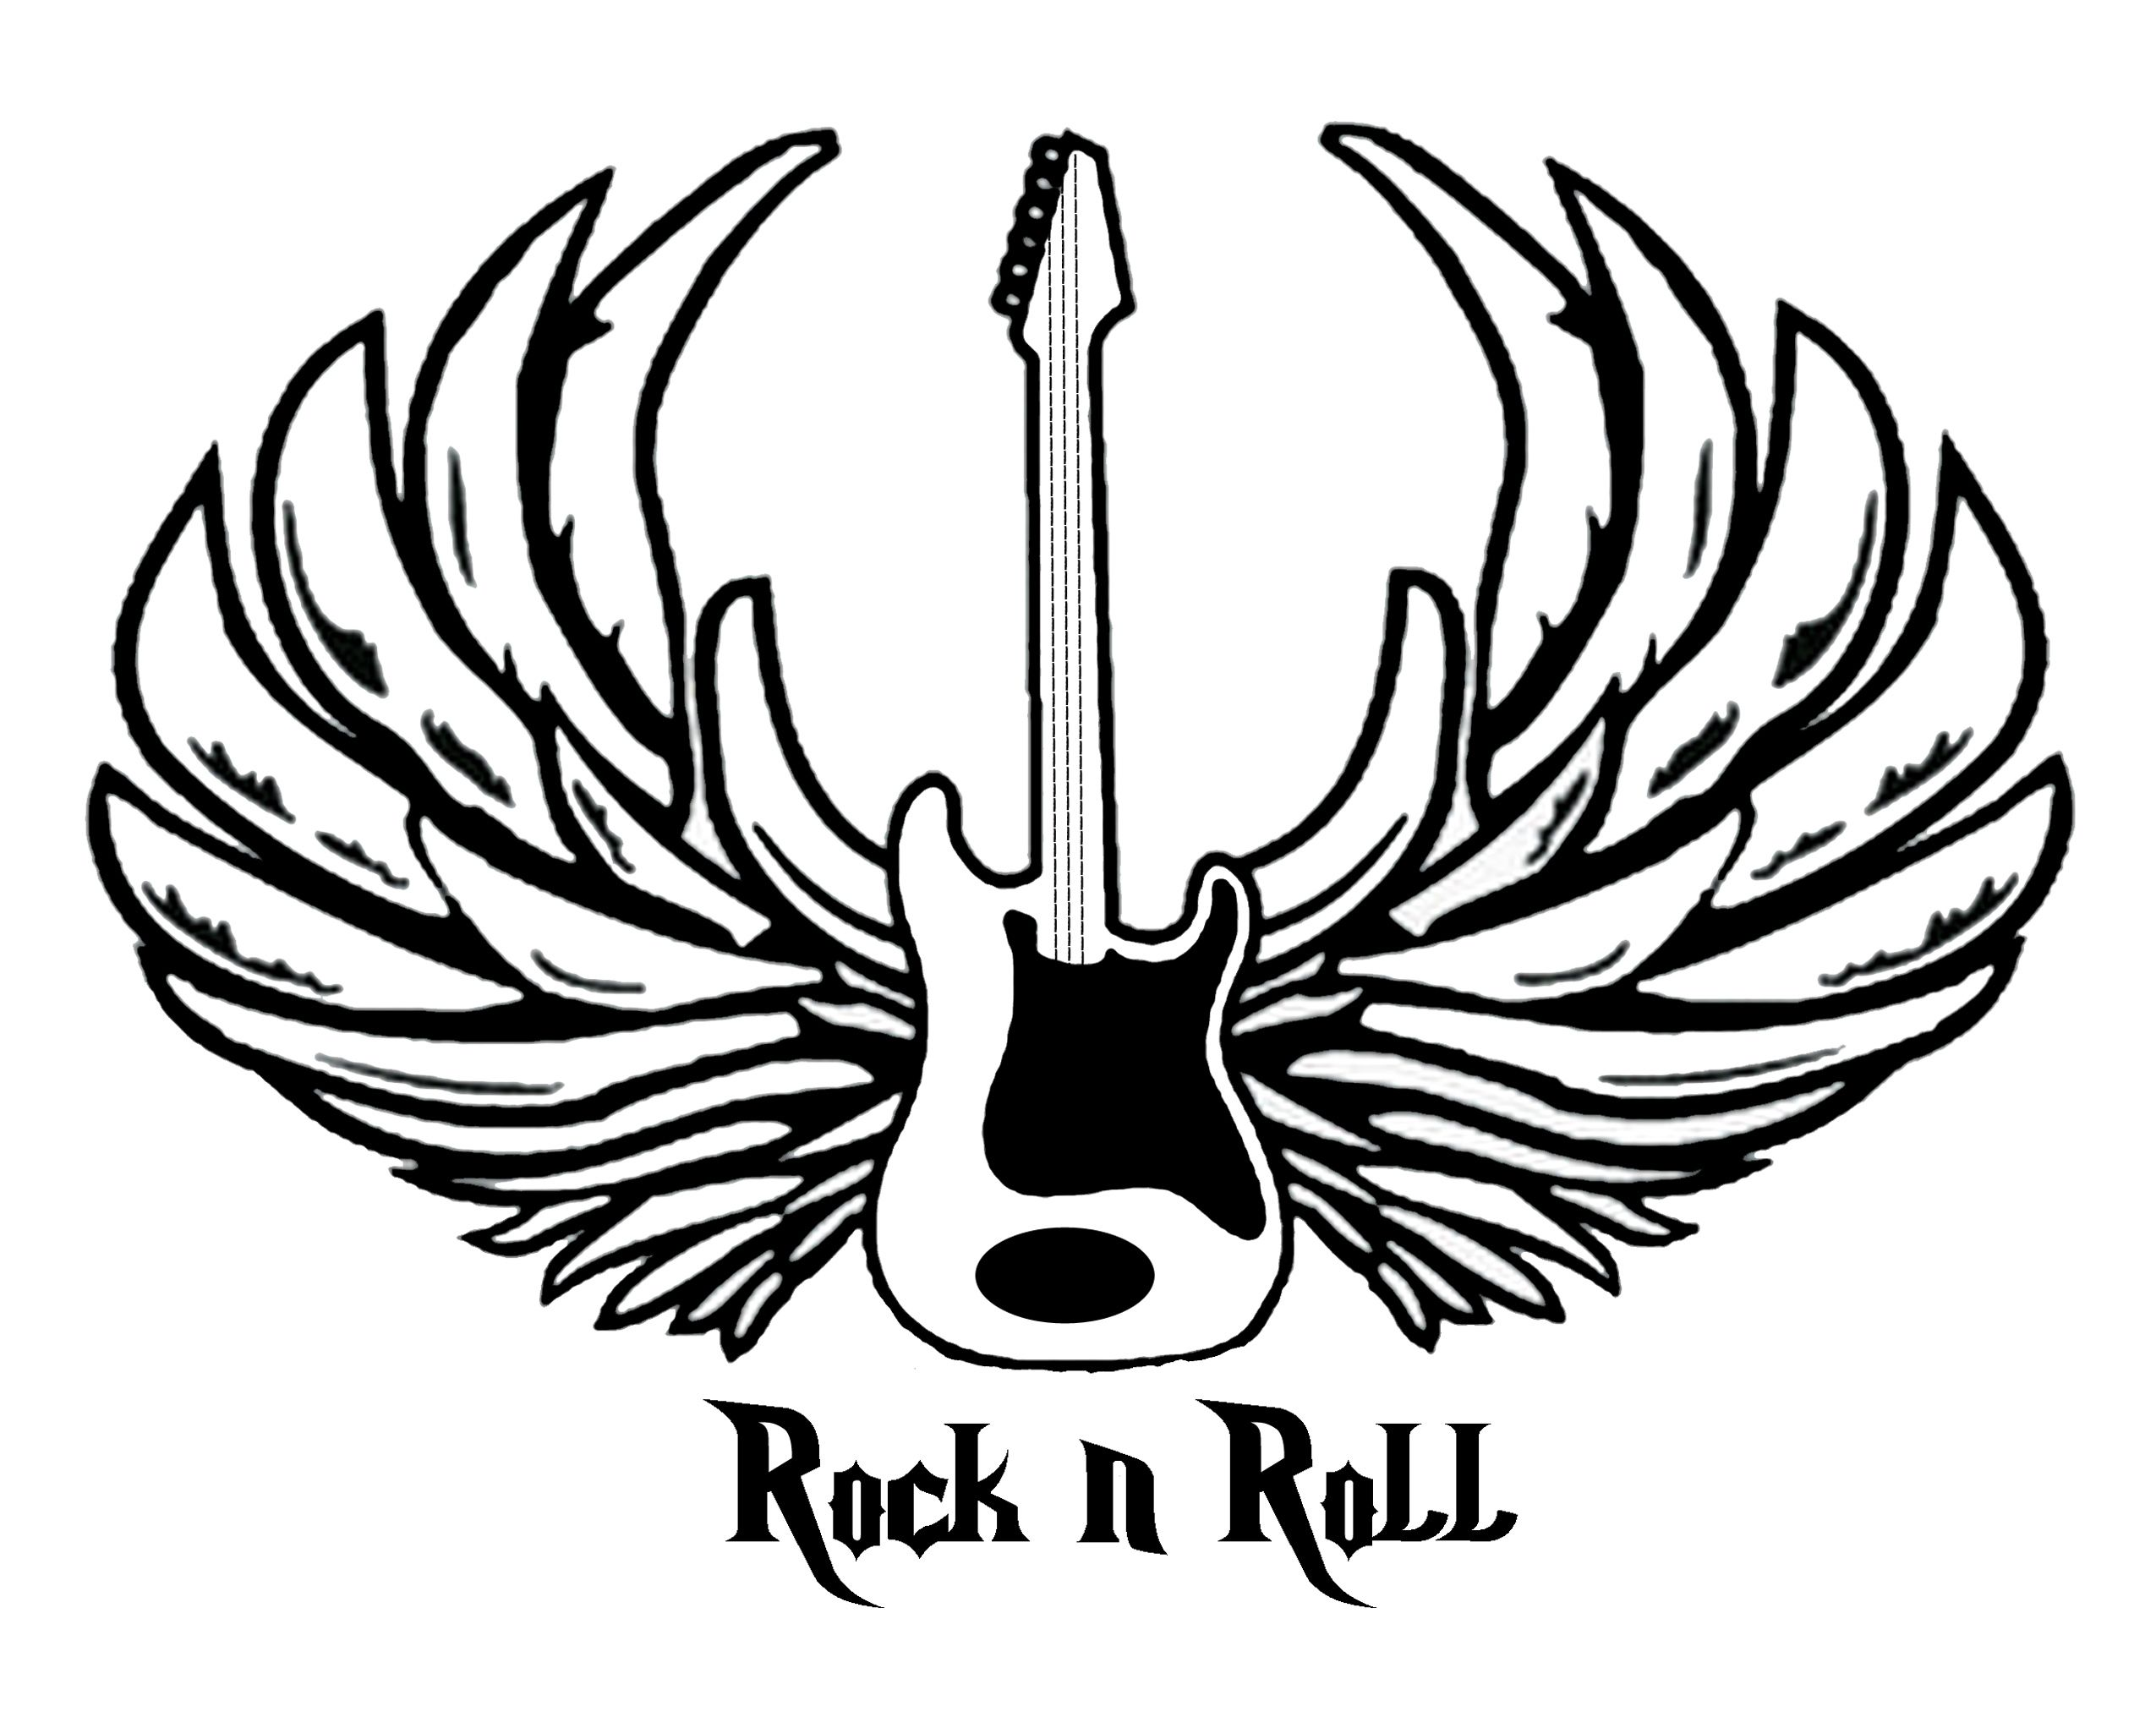 Free Coloring Pages Download Image Result For Rock Guitar Of